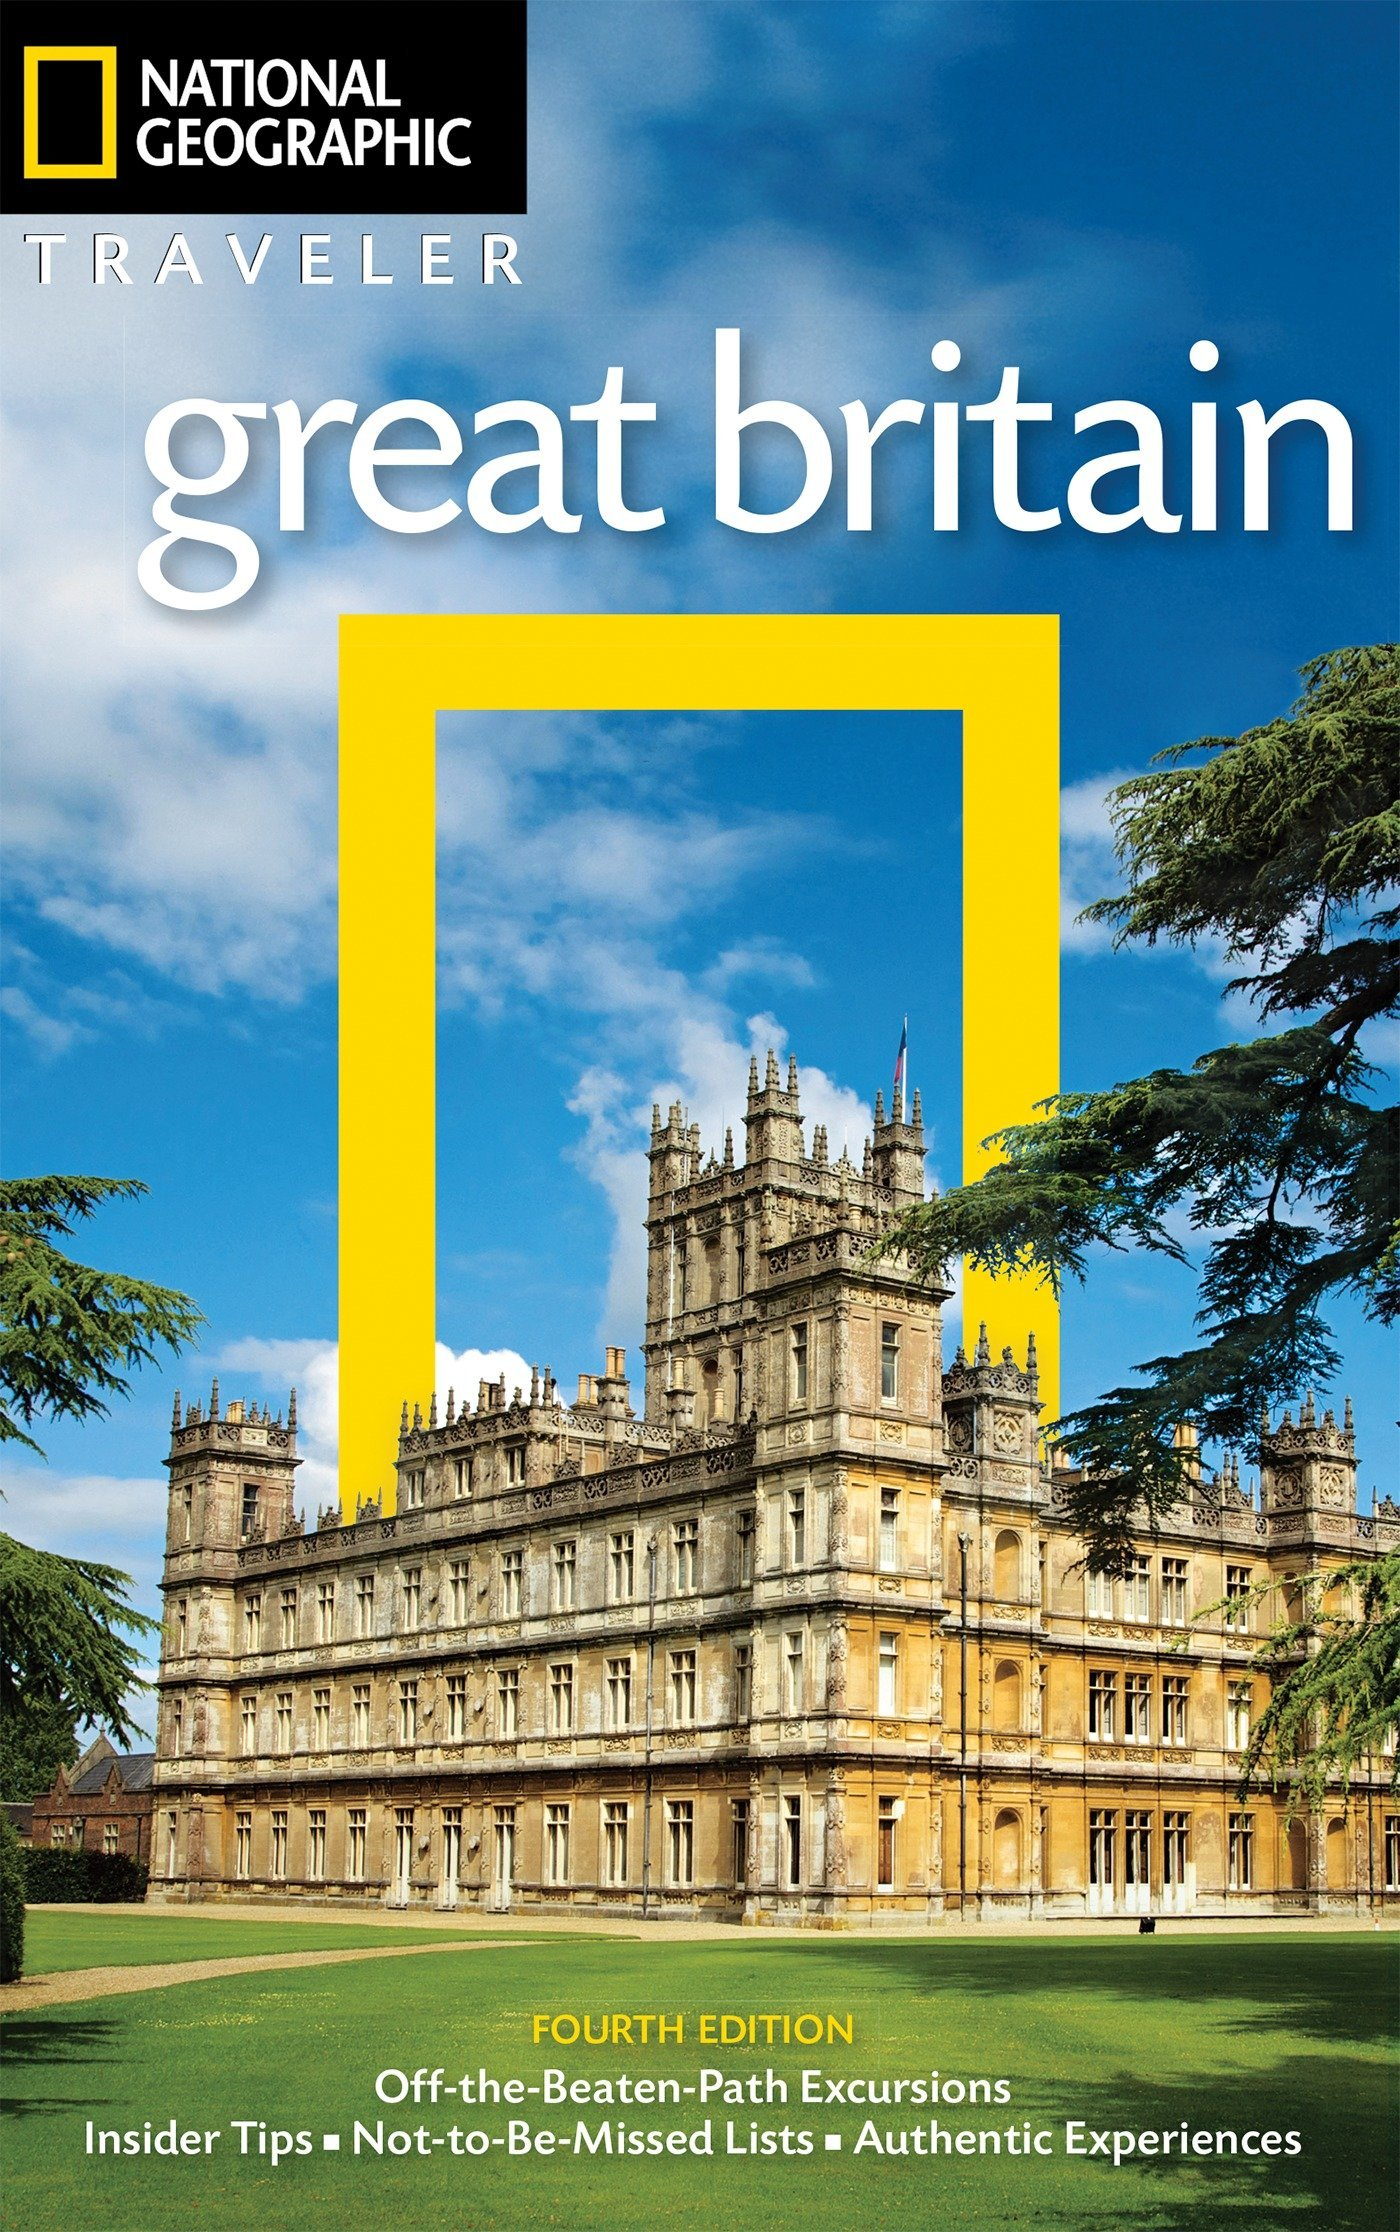 Download National Geographic Traveler: Great Britain, 4th Edition pdf